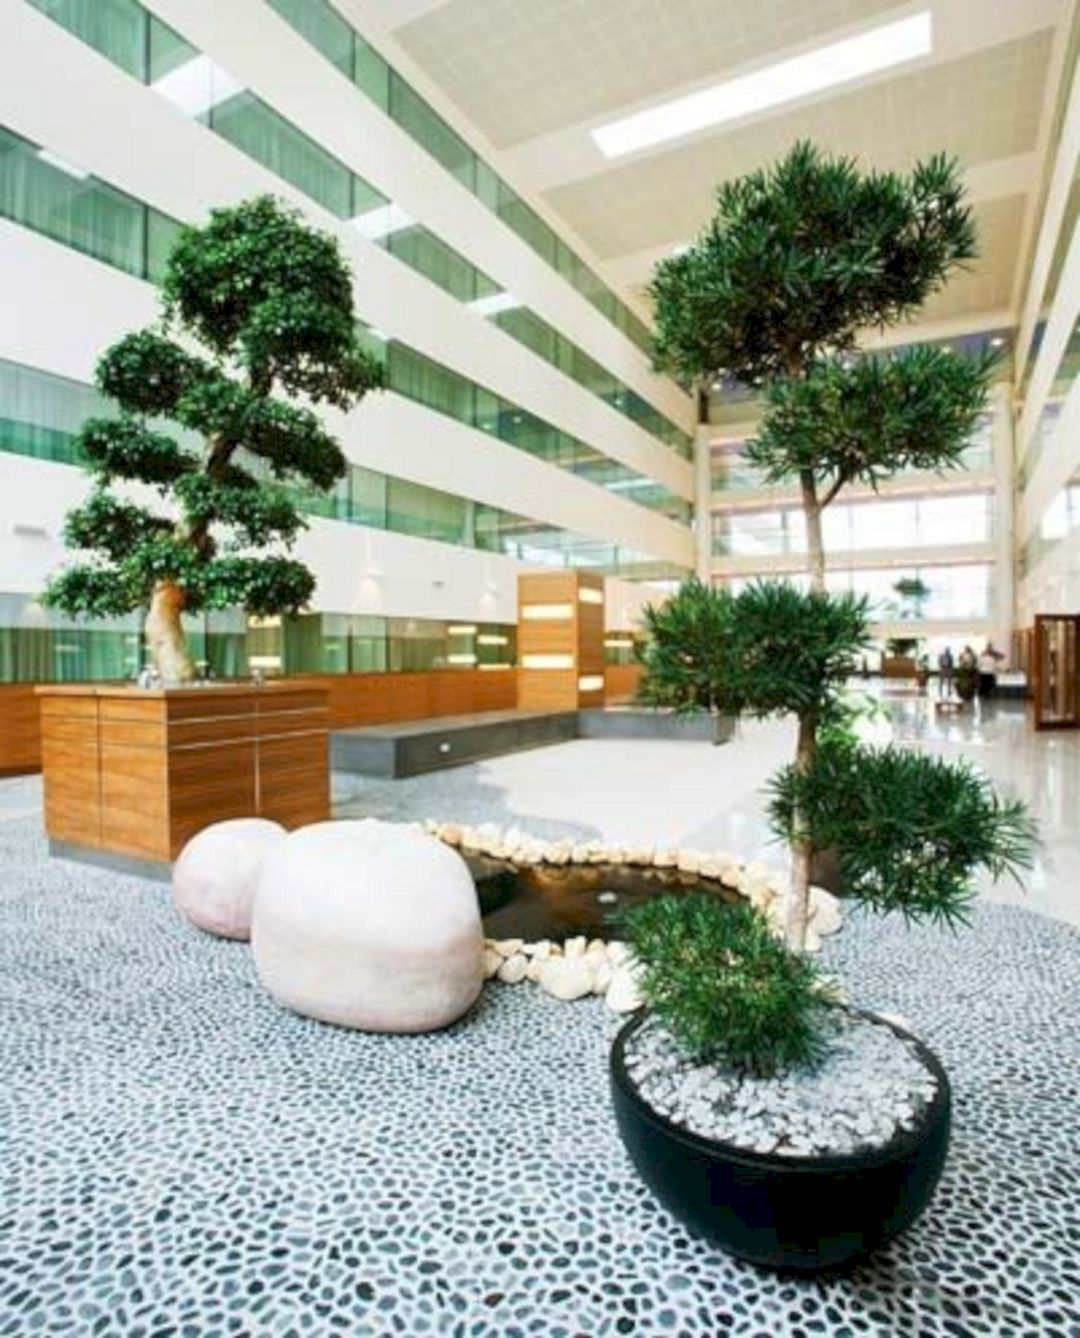 Indoor Zen Garden Ideas 25 43 Amazing Minimalist Indoor Zen Garden Design Ideas